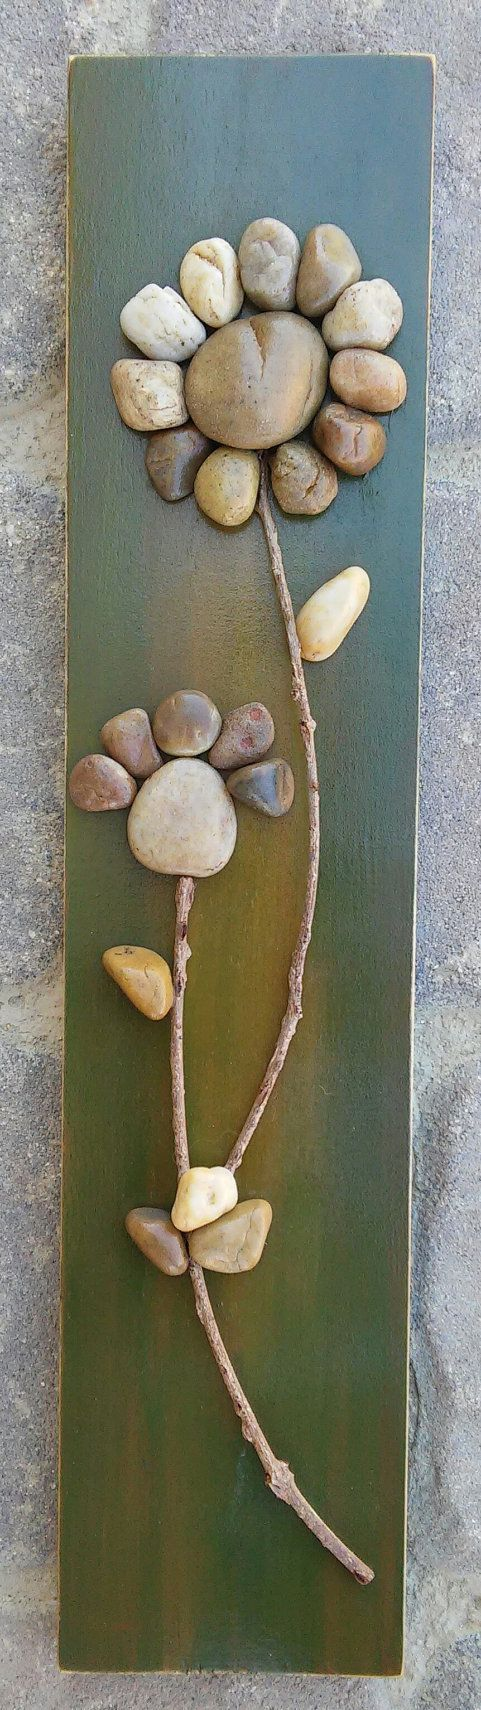 Pebble Art Flower on reclaimed wood 15.5 x 3.5 by CrawfordBunch